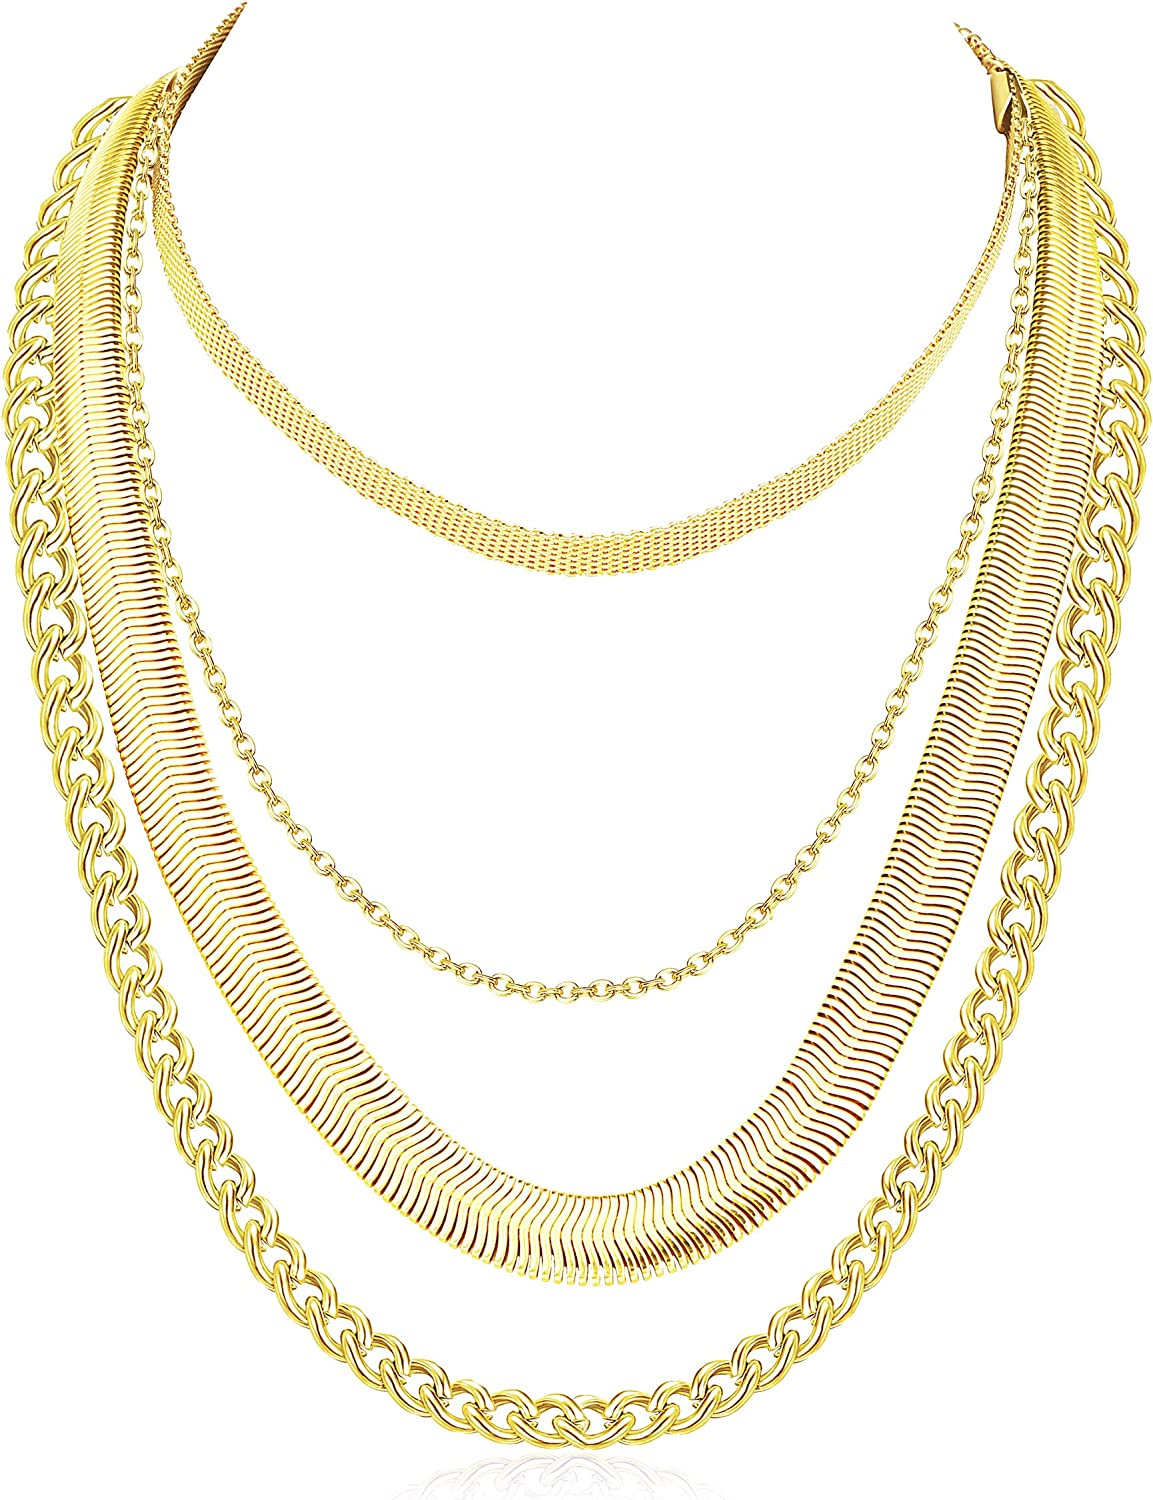 RnBLM JEWELRY 3-4 Pcs 14K Gold Plated Layered Necklaces for Women Minimalist Dainty Link Choker Chain Necklaces Set